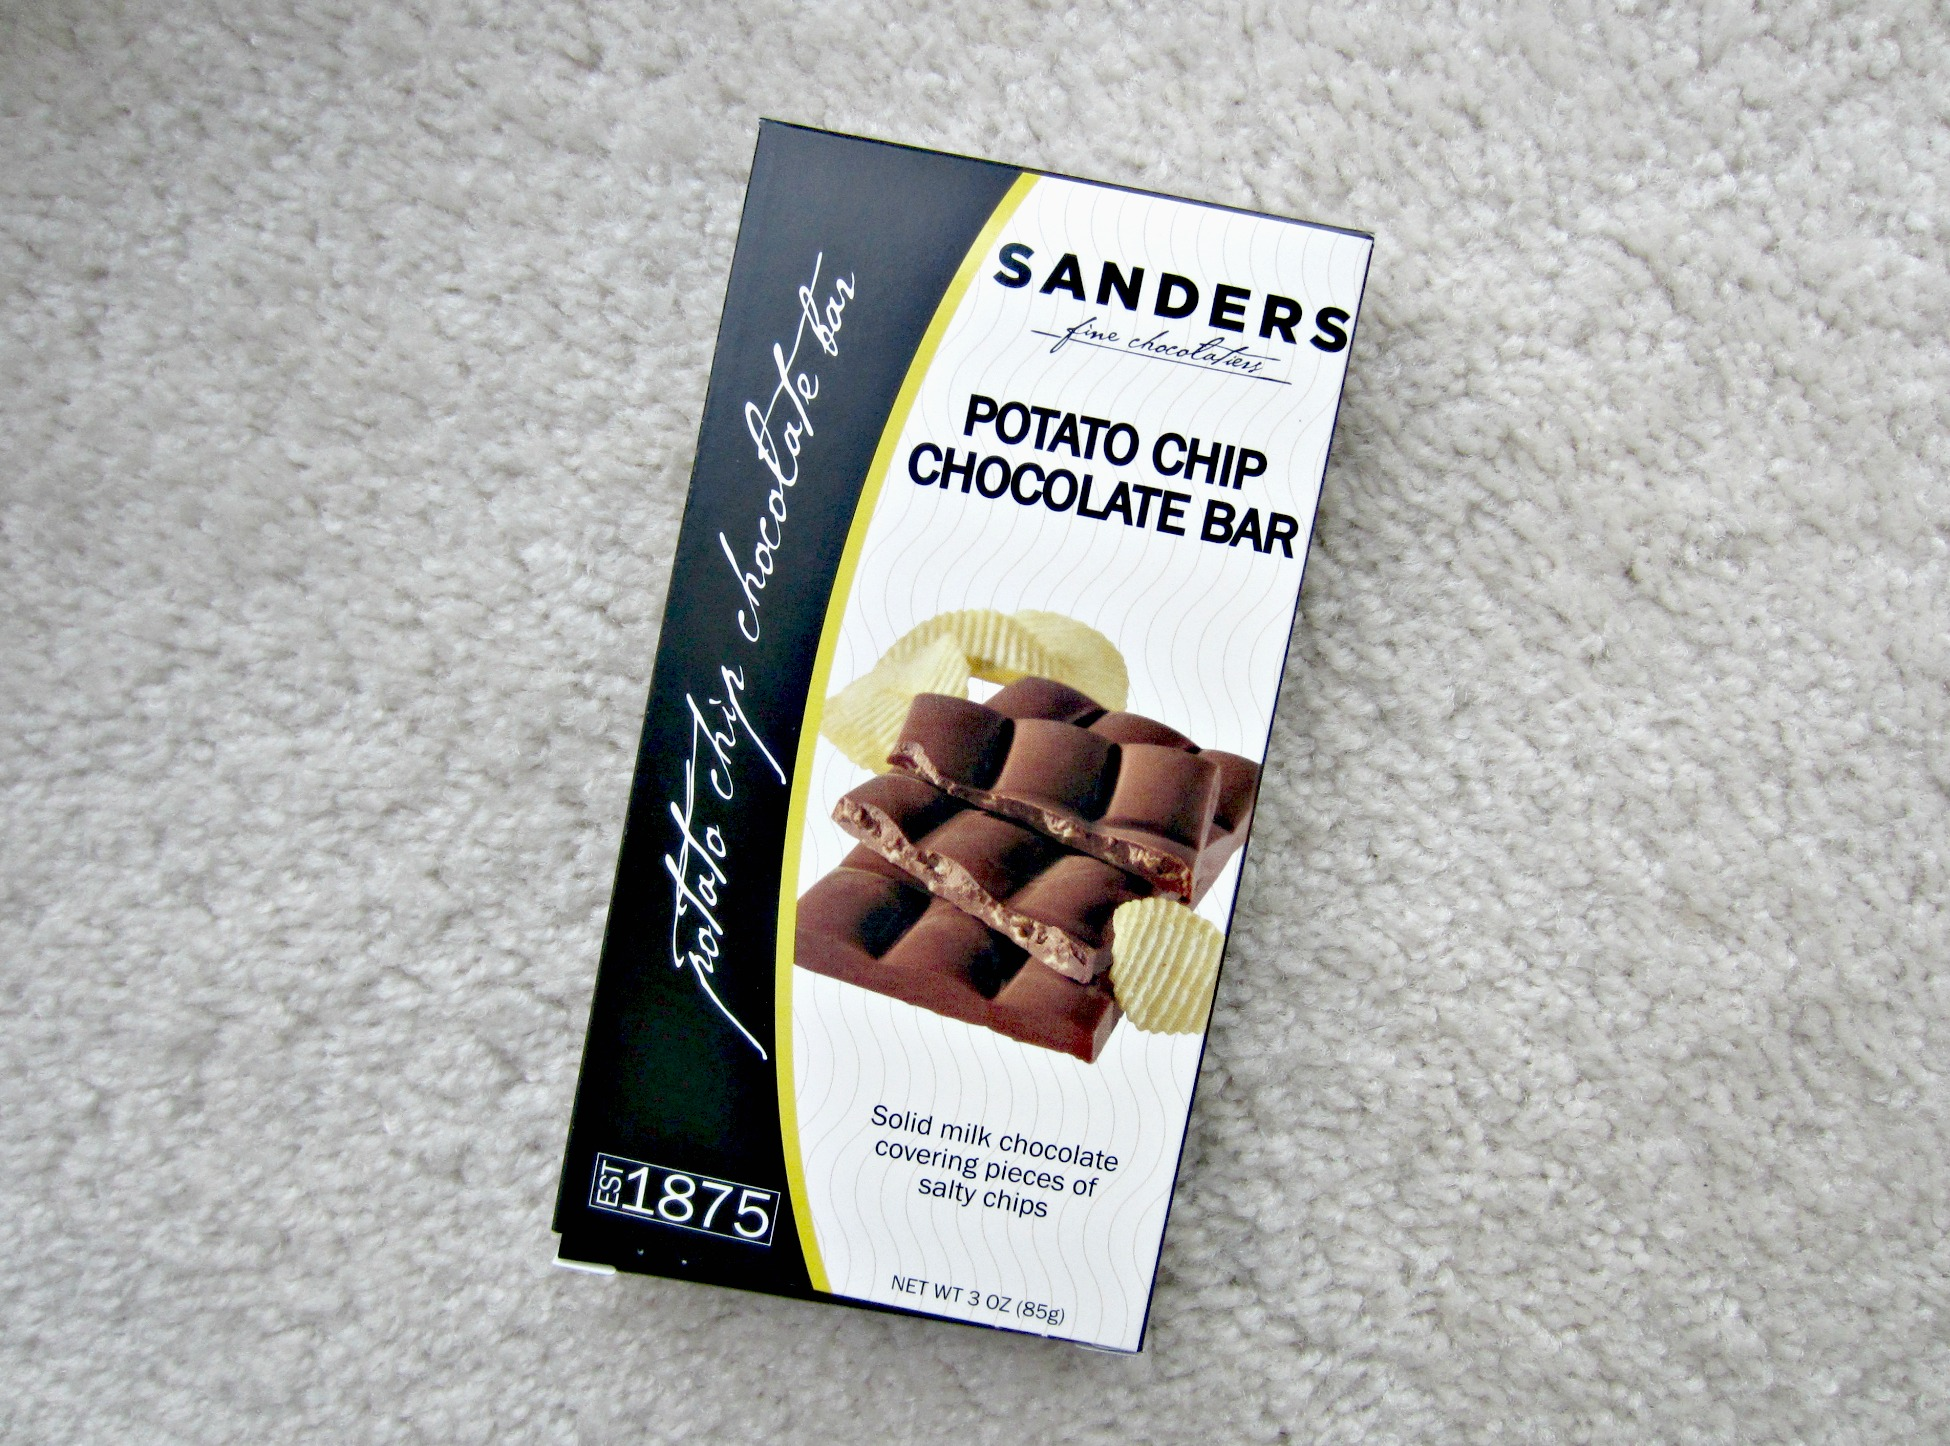 Sanders Potato Chip Chocolate Bar